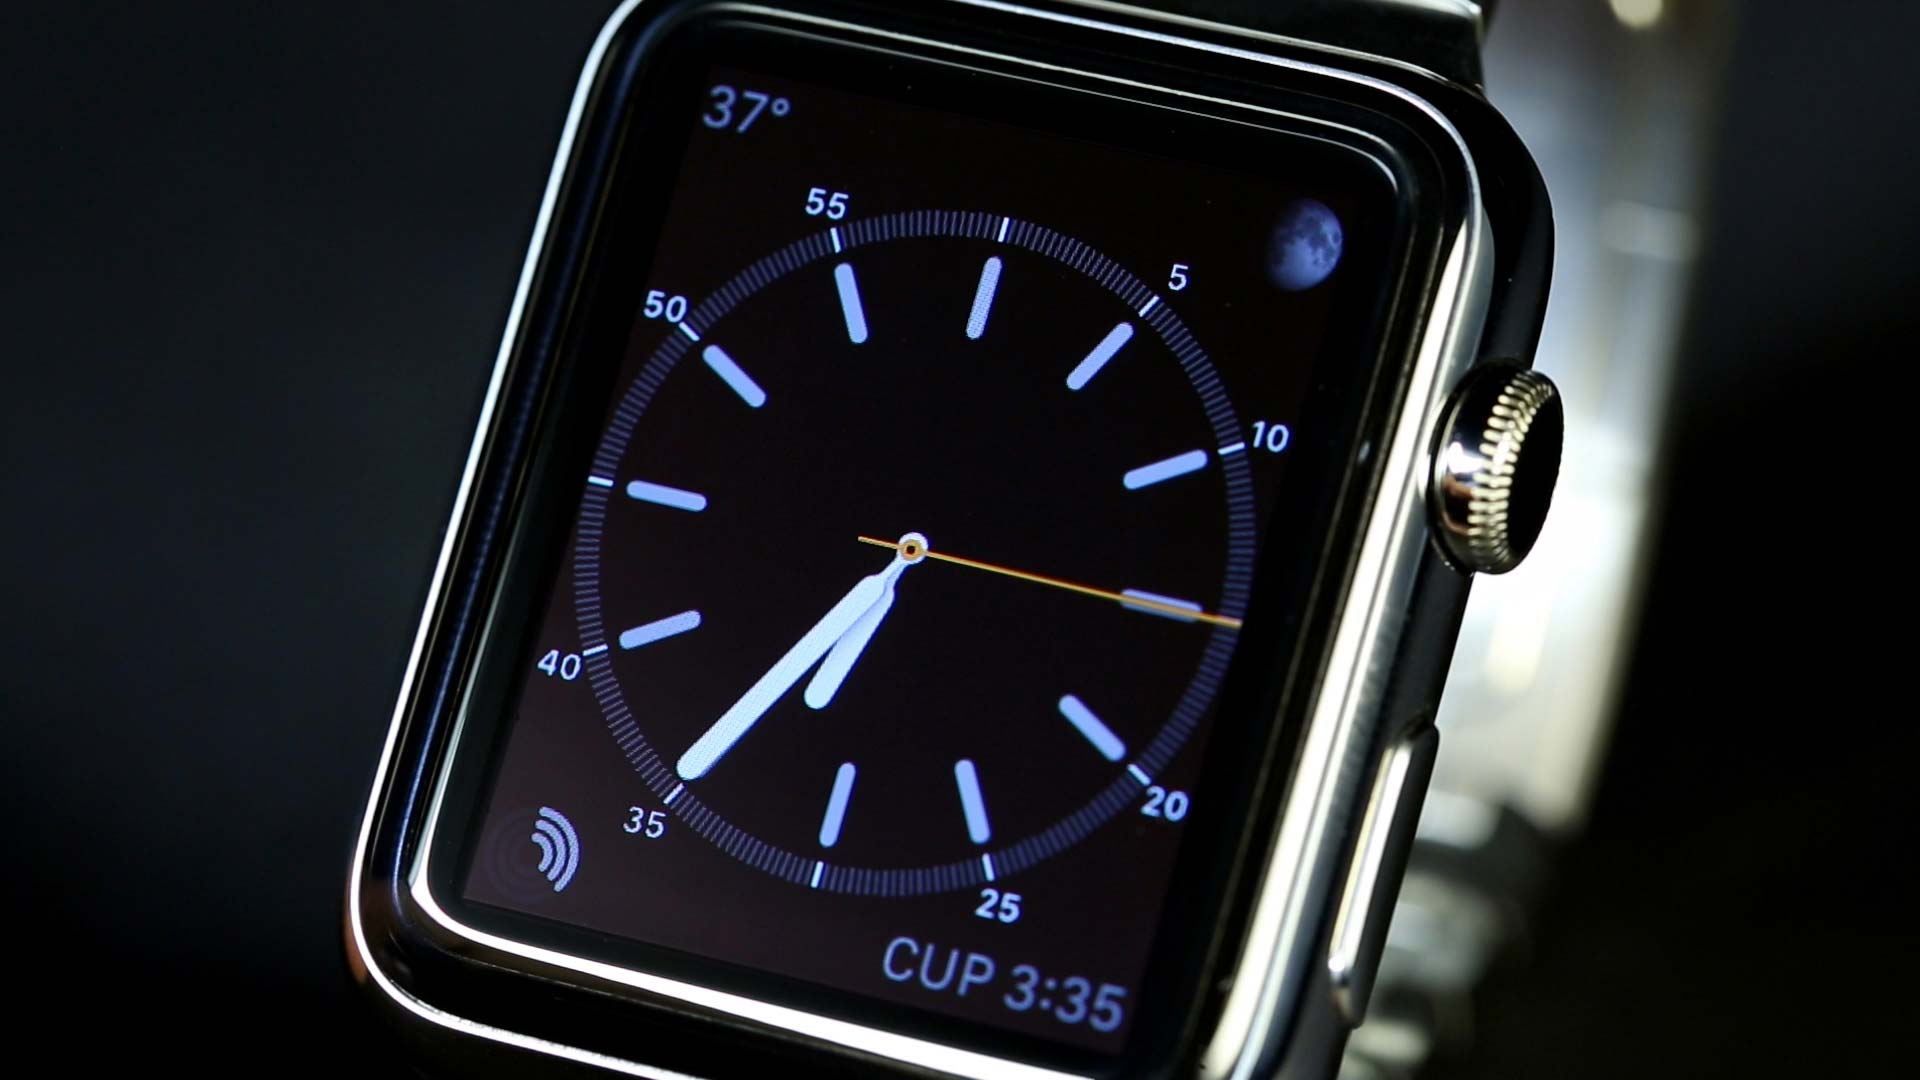 Apple Watch review: The best smartwatch on the market